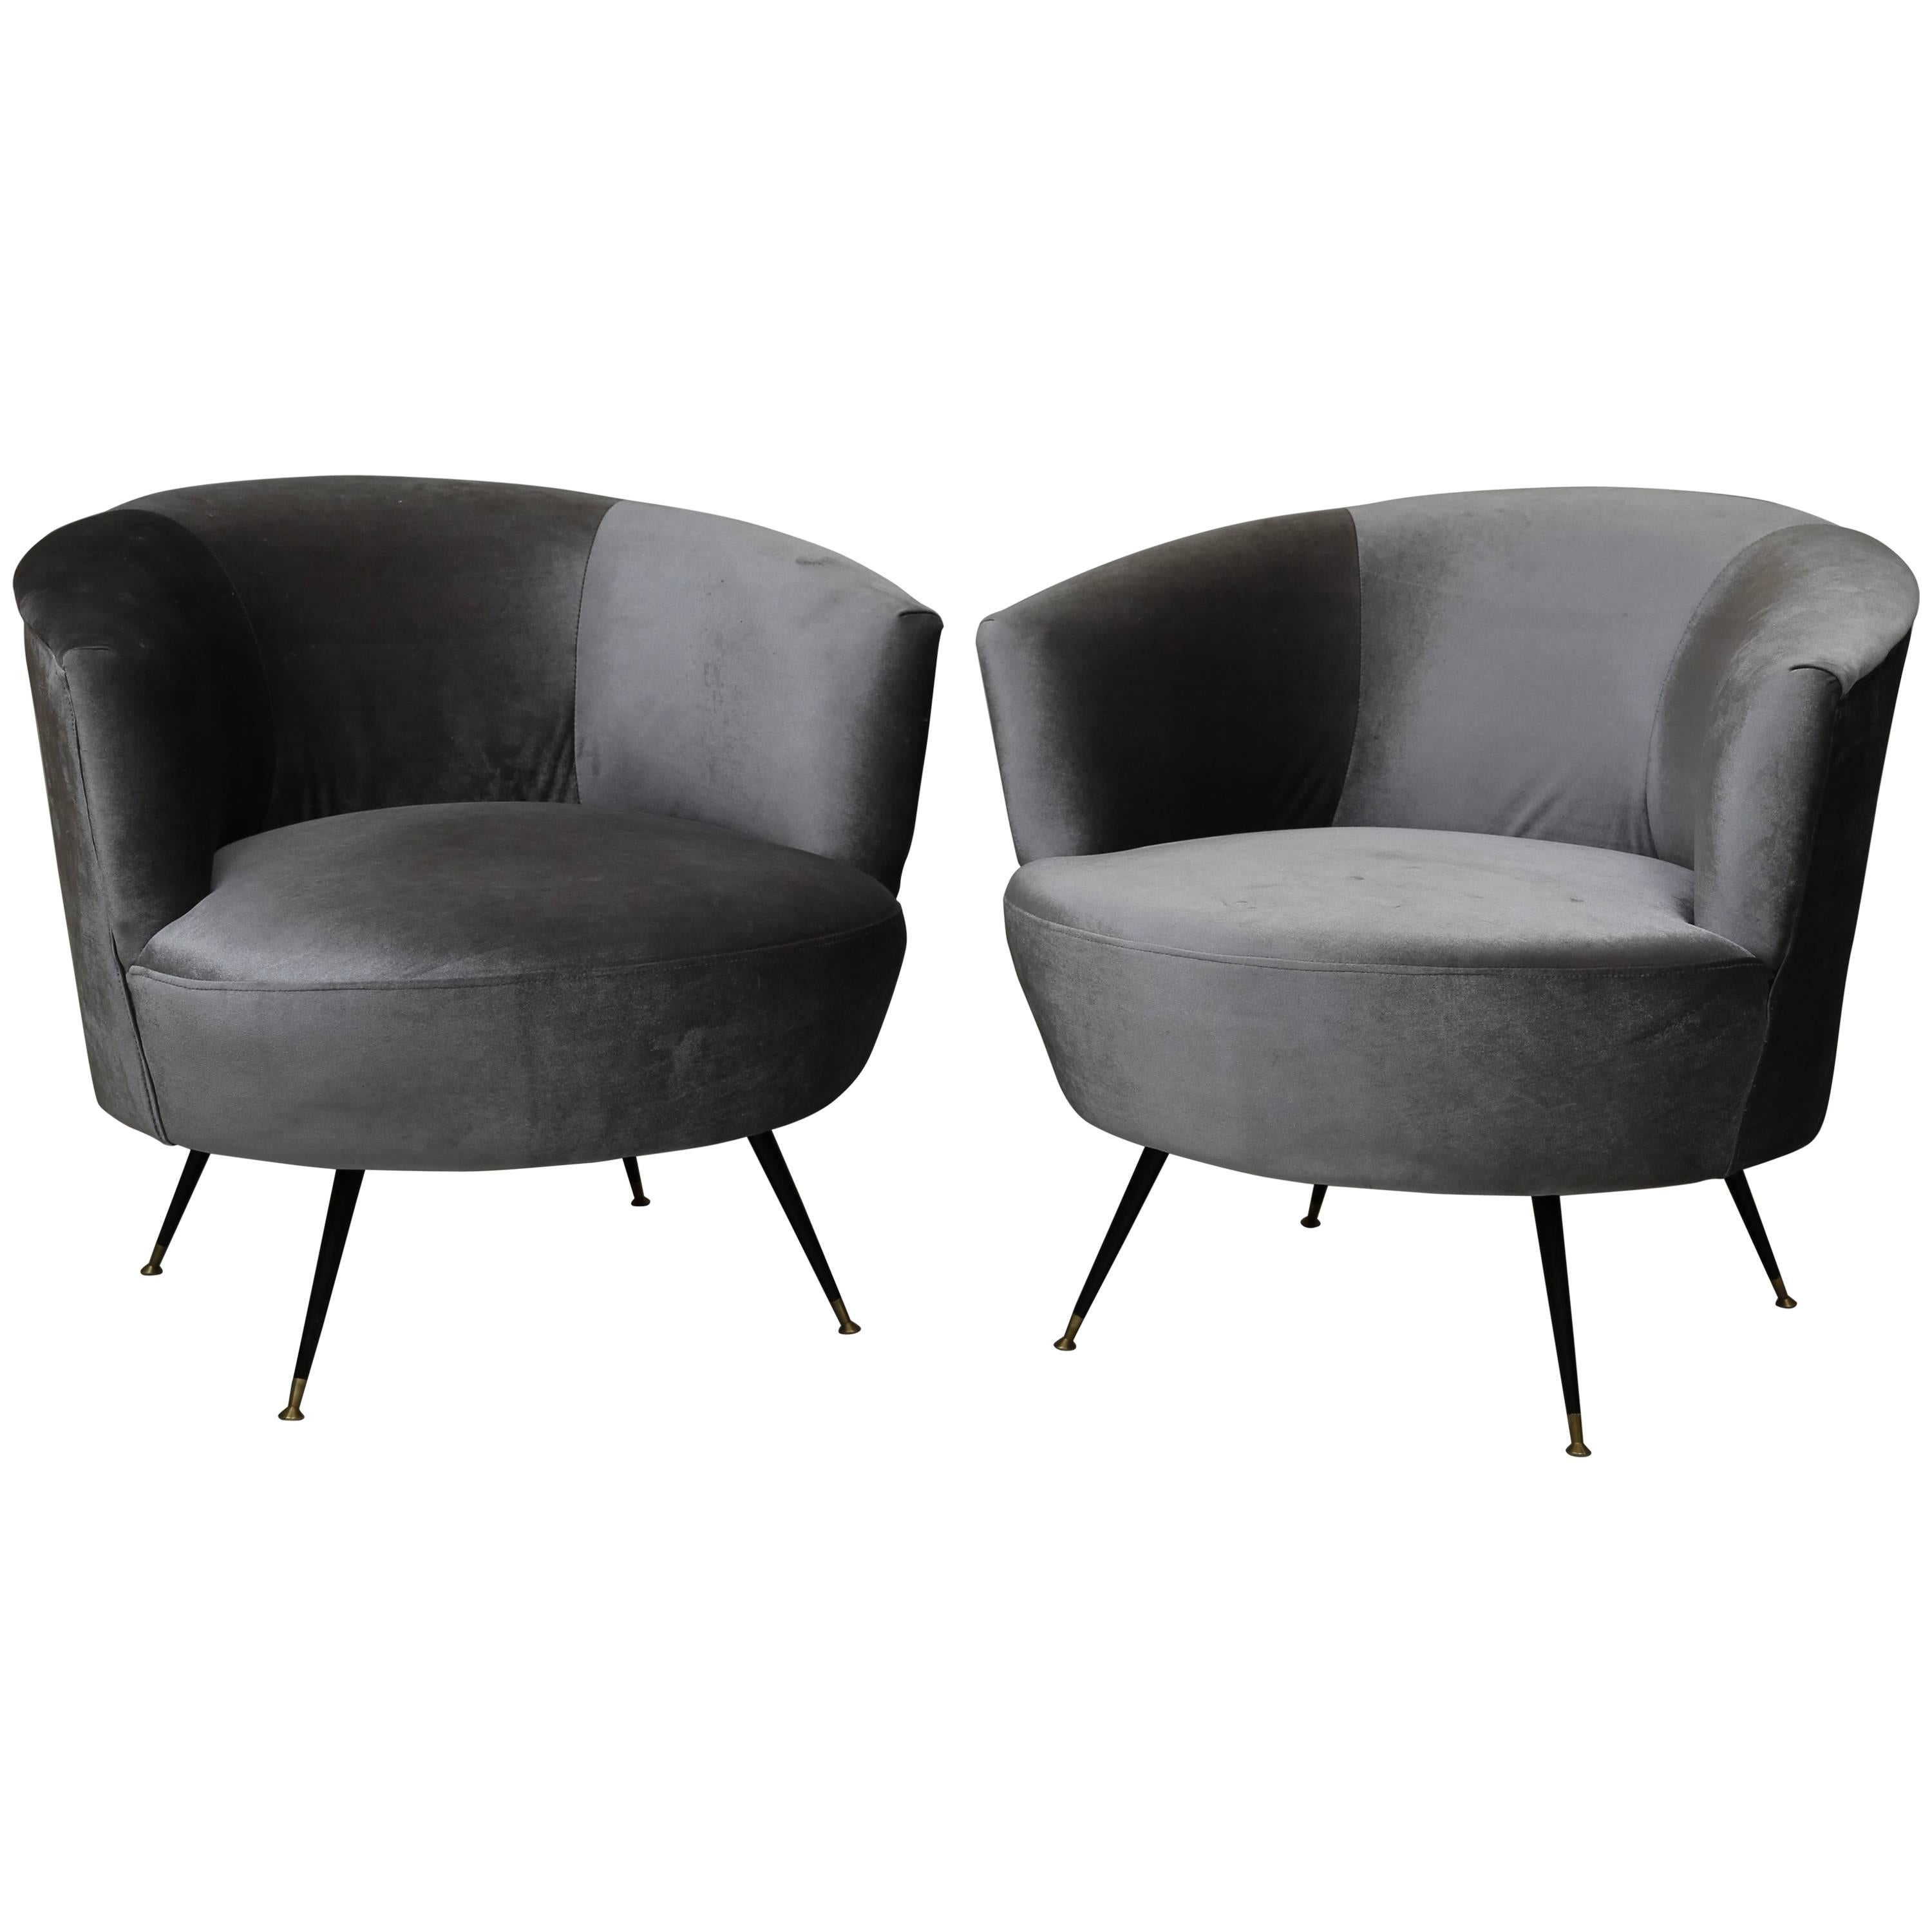 Attrayant Mid Century Modern Barrel Chairs In Kravet Velvet For Sale